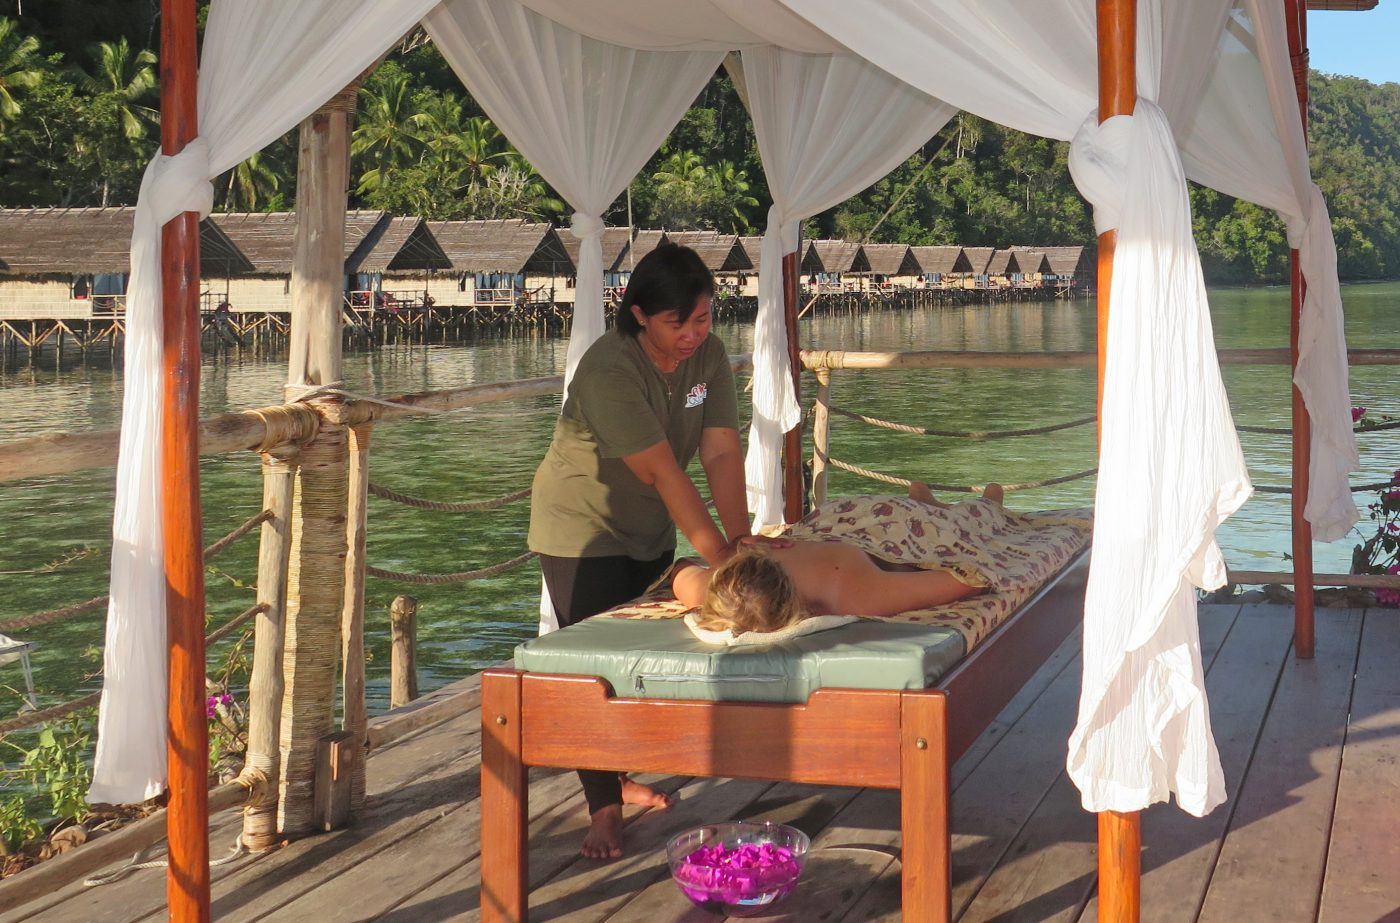 massage treatment with Papua Explorers bungalows in the background